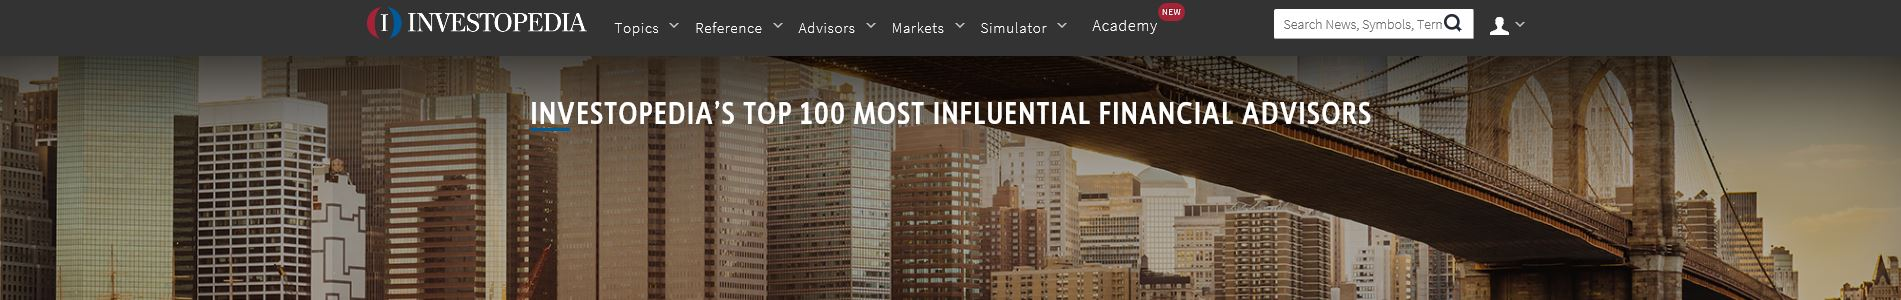 We are excited to share Ann's Recognition by Investopedia.